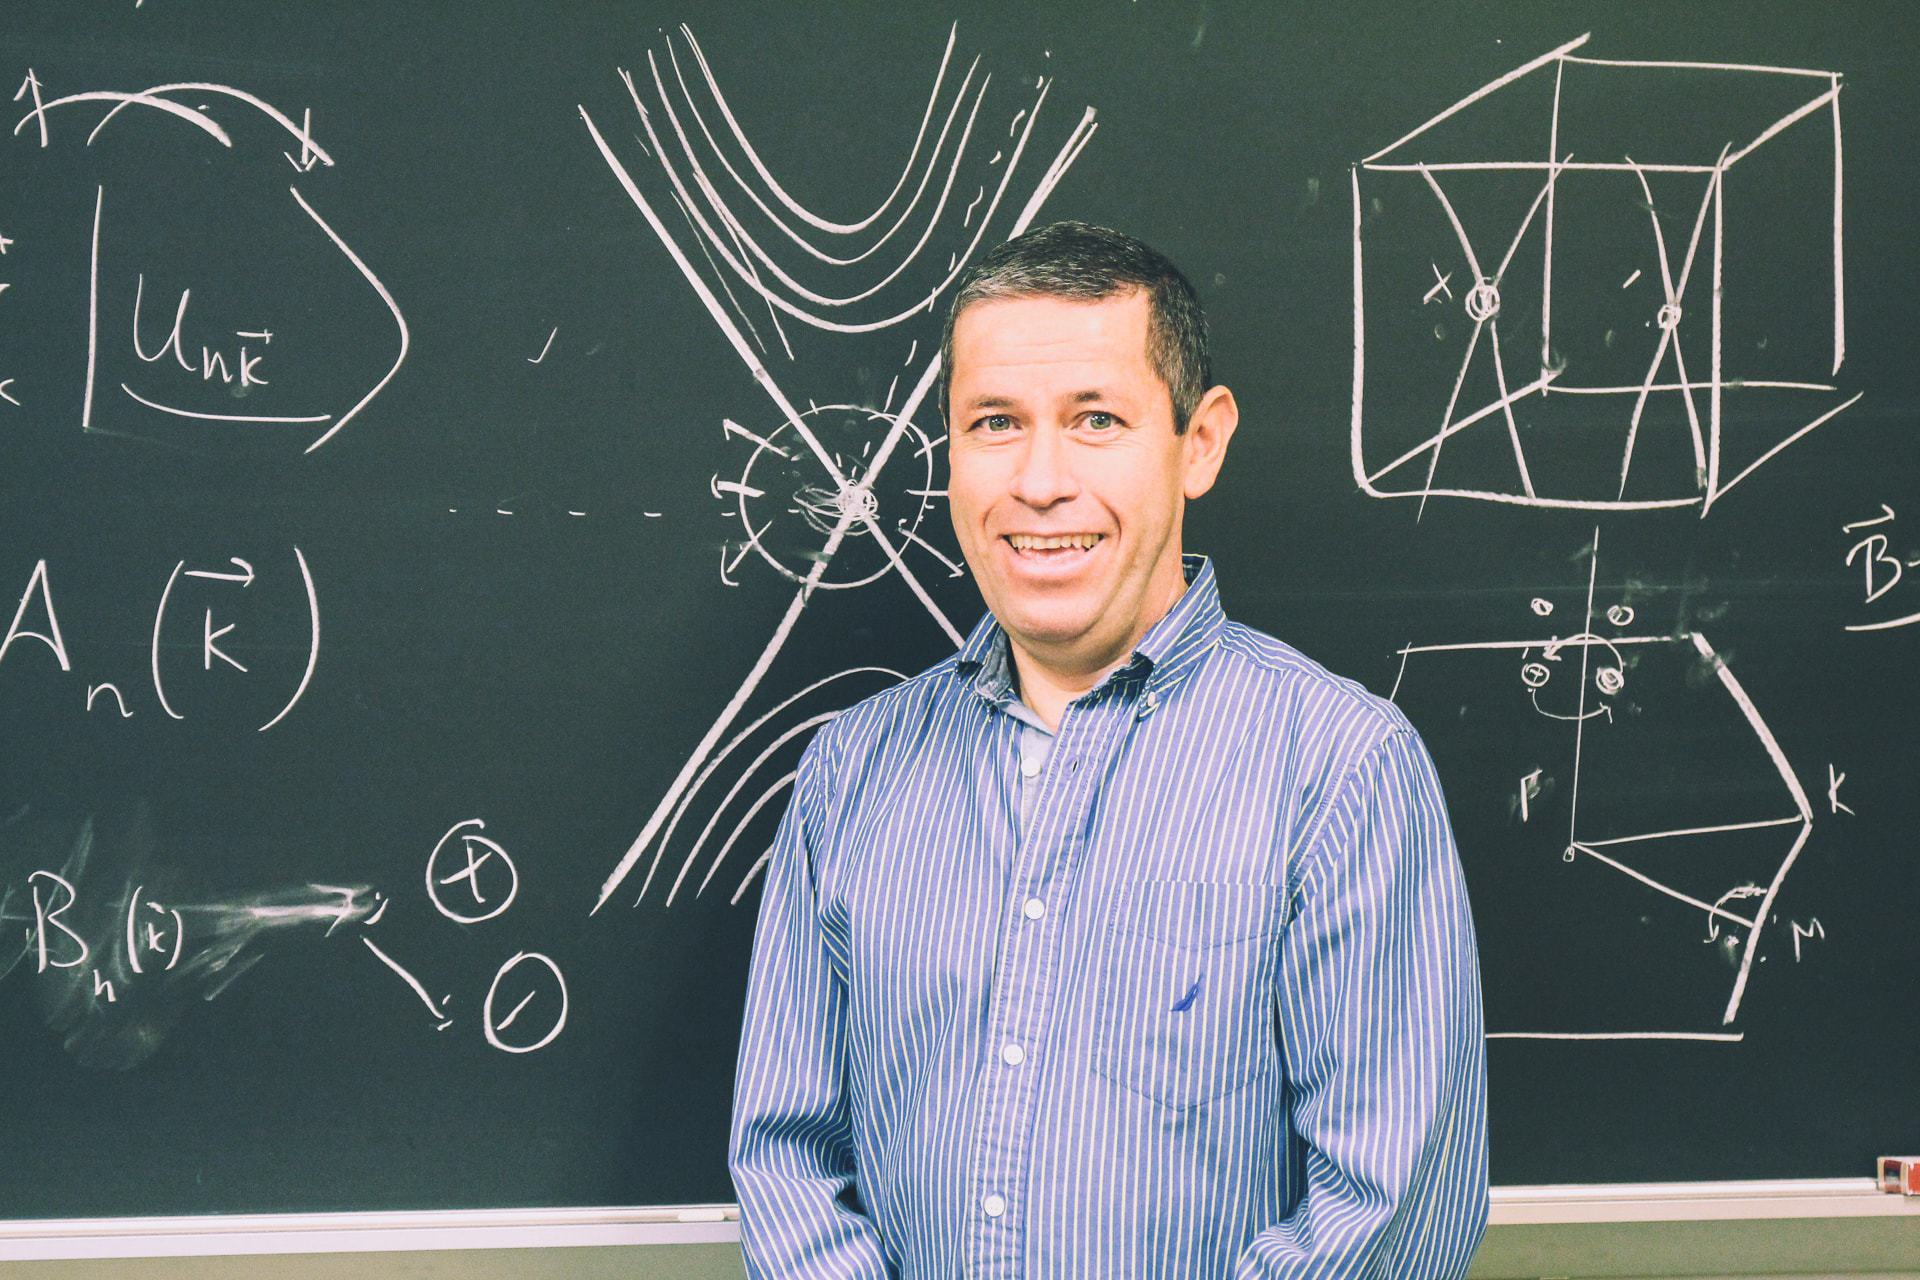 WVU physicists awarded $1.34 million to develop machine-learning software